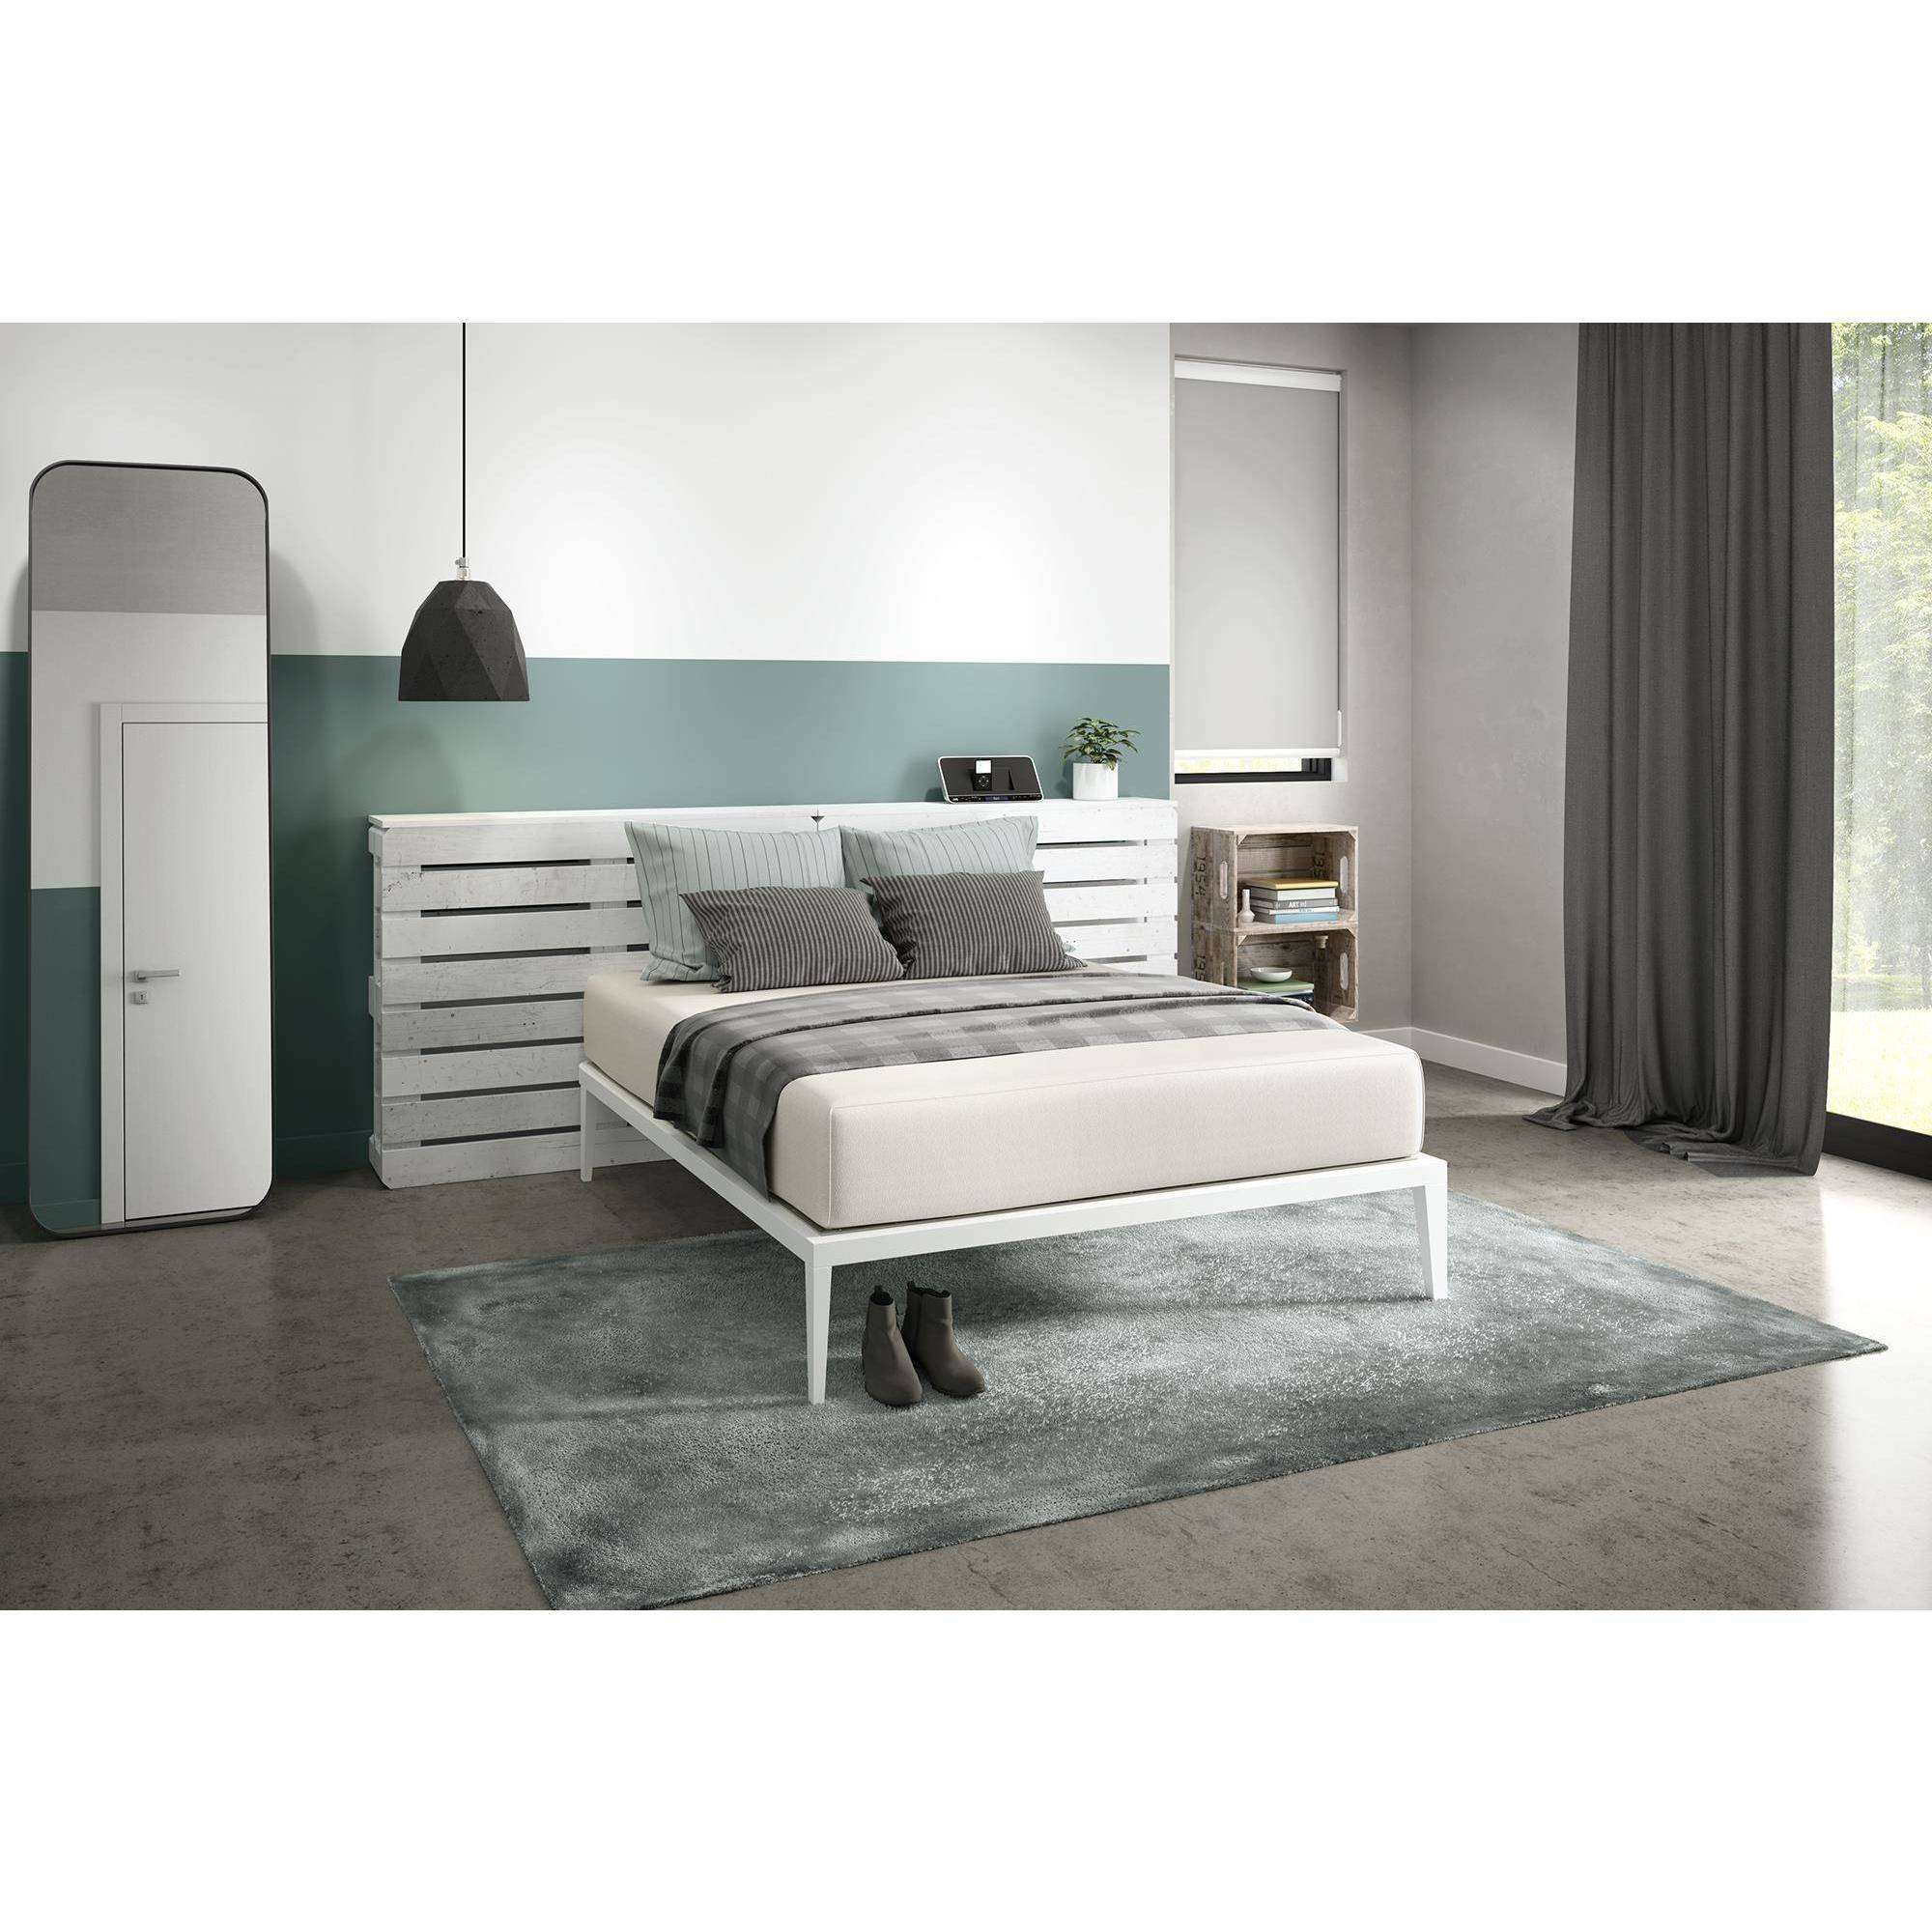 signature sleep memoir 12 memory foam mattress walmartcom